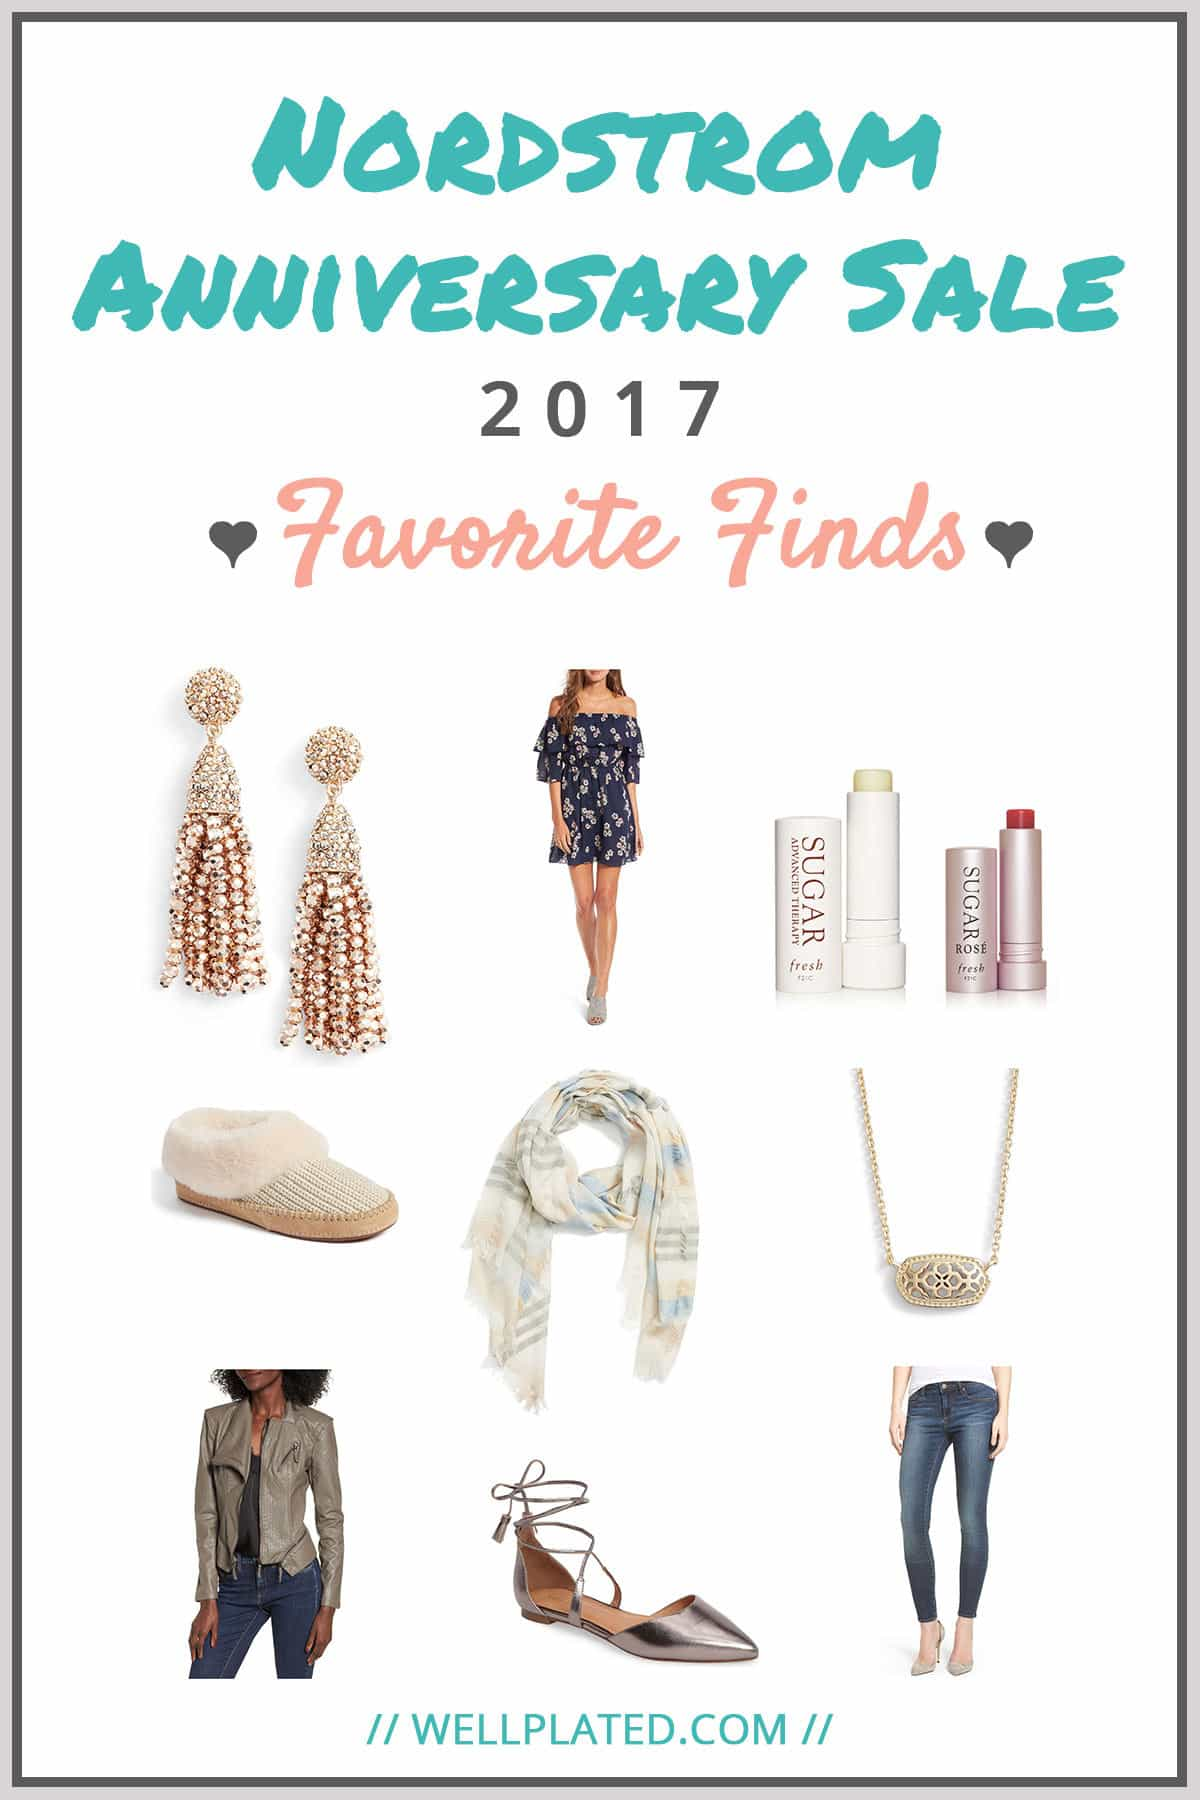 Best of the Nordstrom Anniversary Sale 2017. Great deals on the hottest styles, from women's dresses to jeans to beauty products. Recipe at wellplated.com | @wellplated